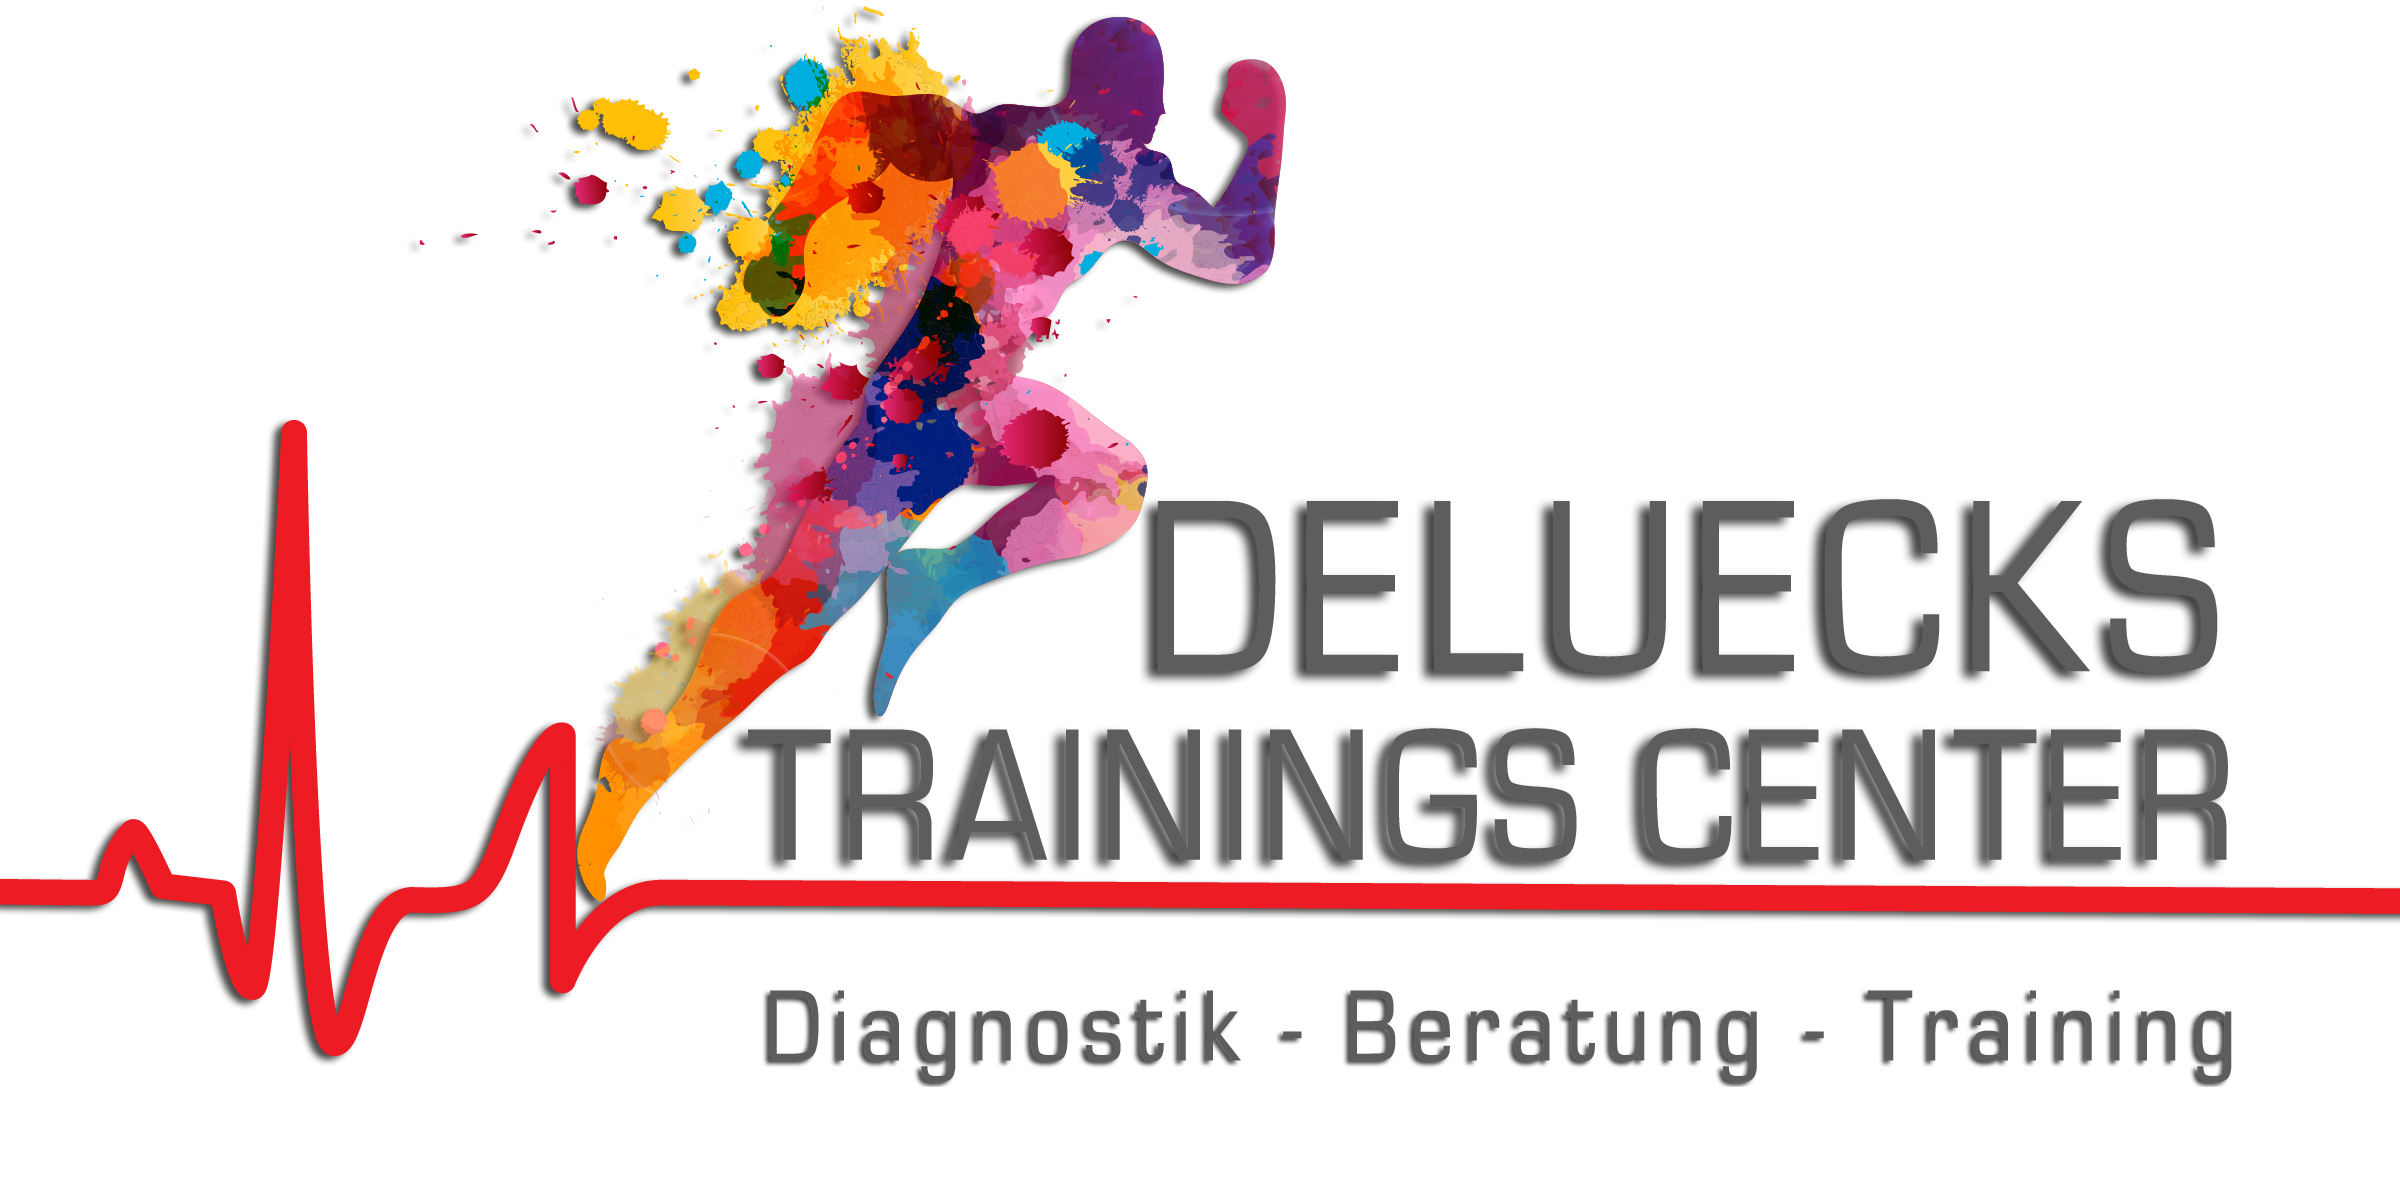 Personal Trainer Dresden – Deluecks Training